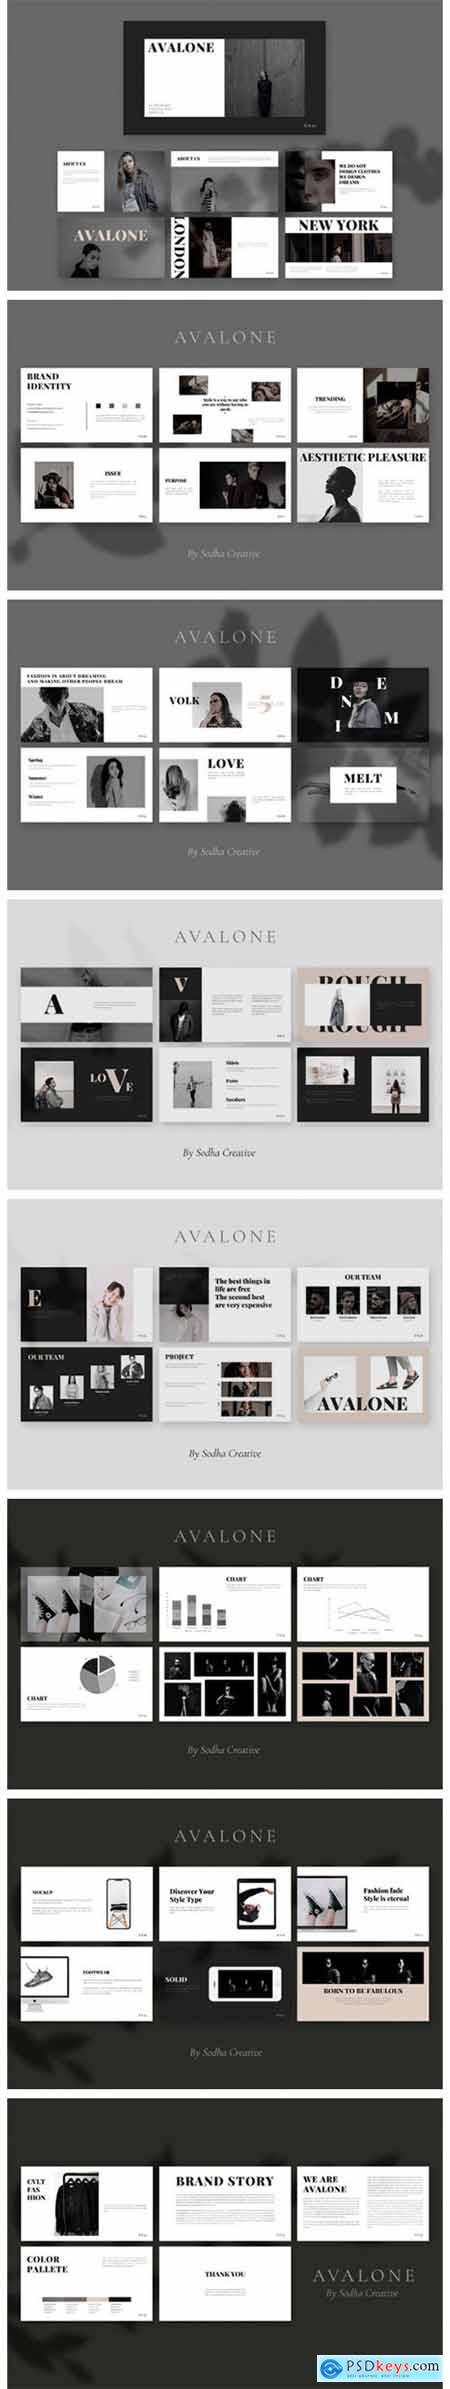 AVALONE Powerpoint Template 9723115